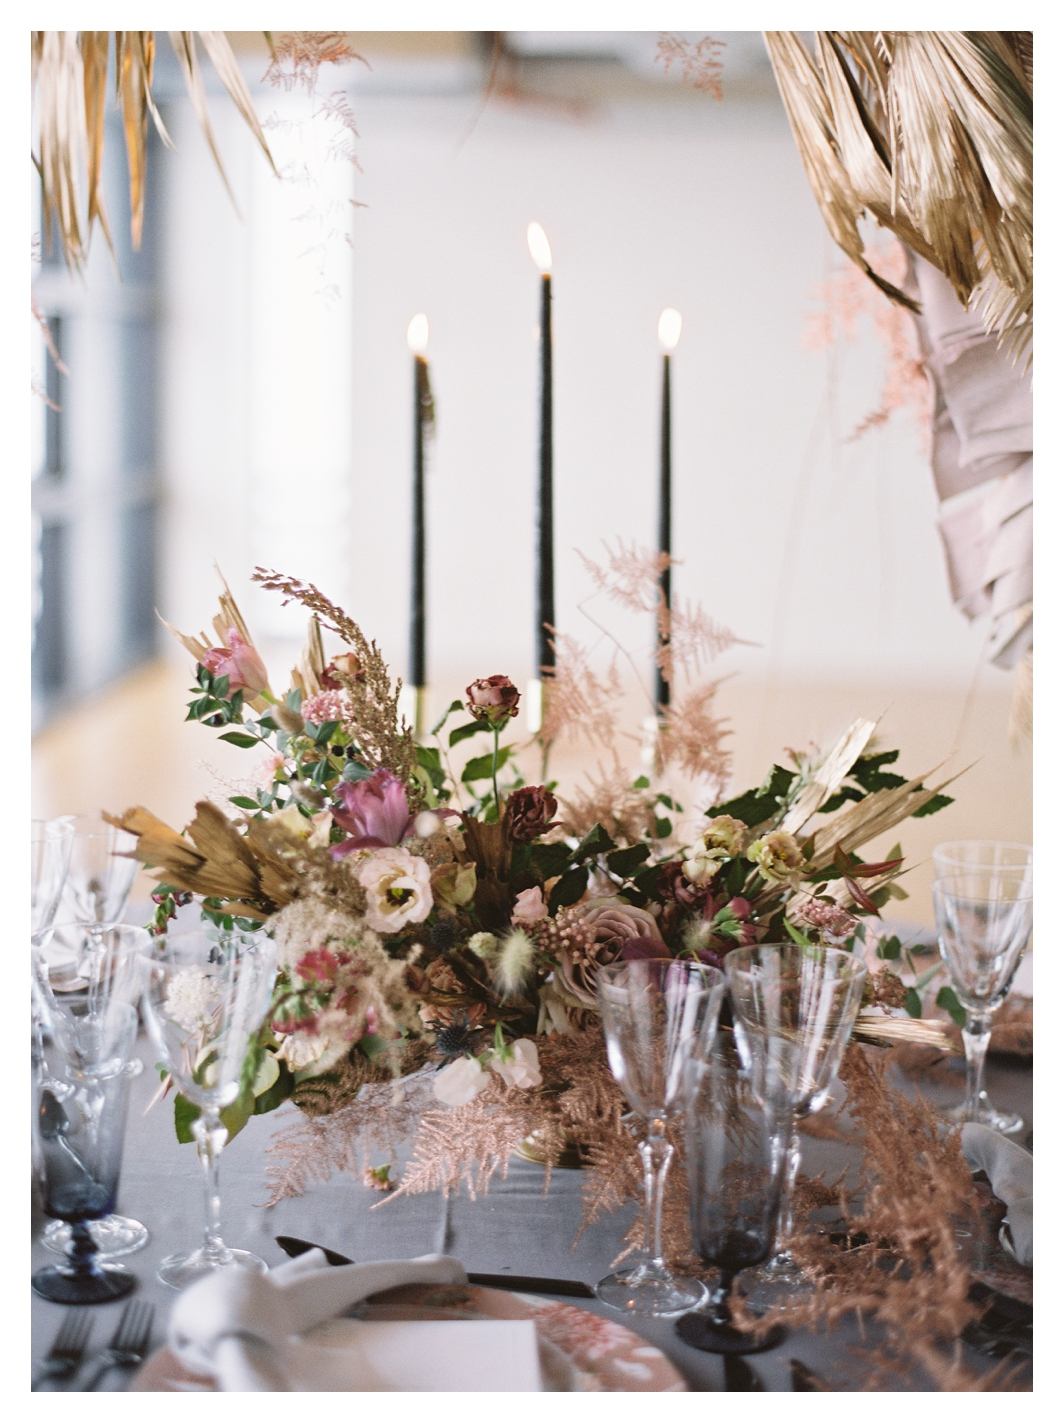 pink wedding flowers, winter wedding flowers, table setting, black taper candles